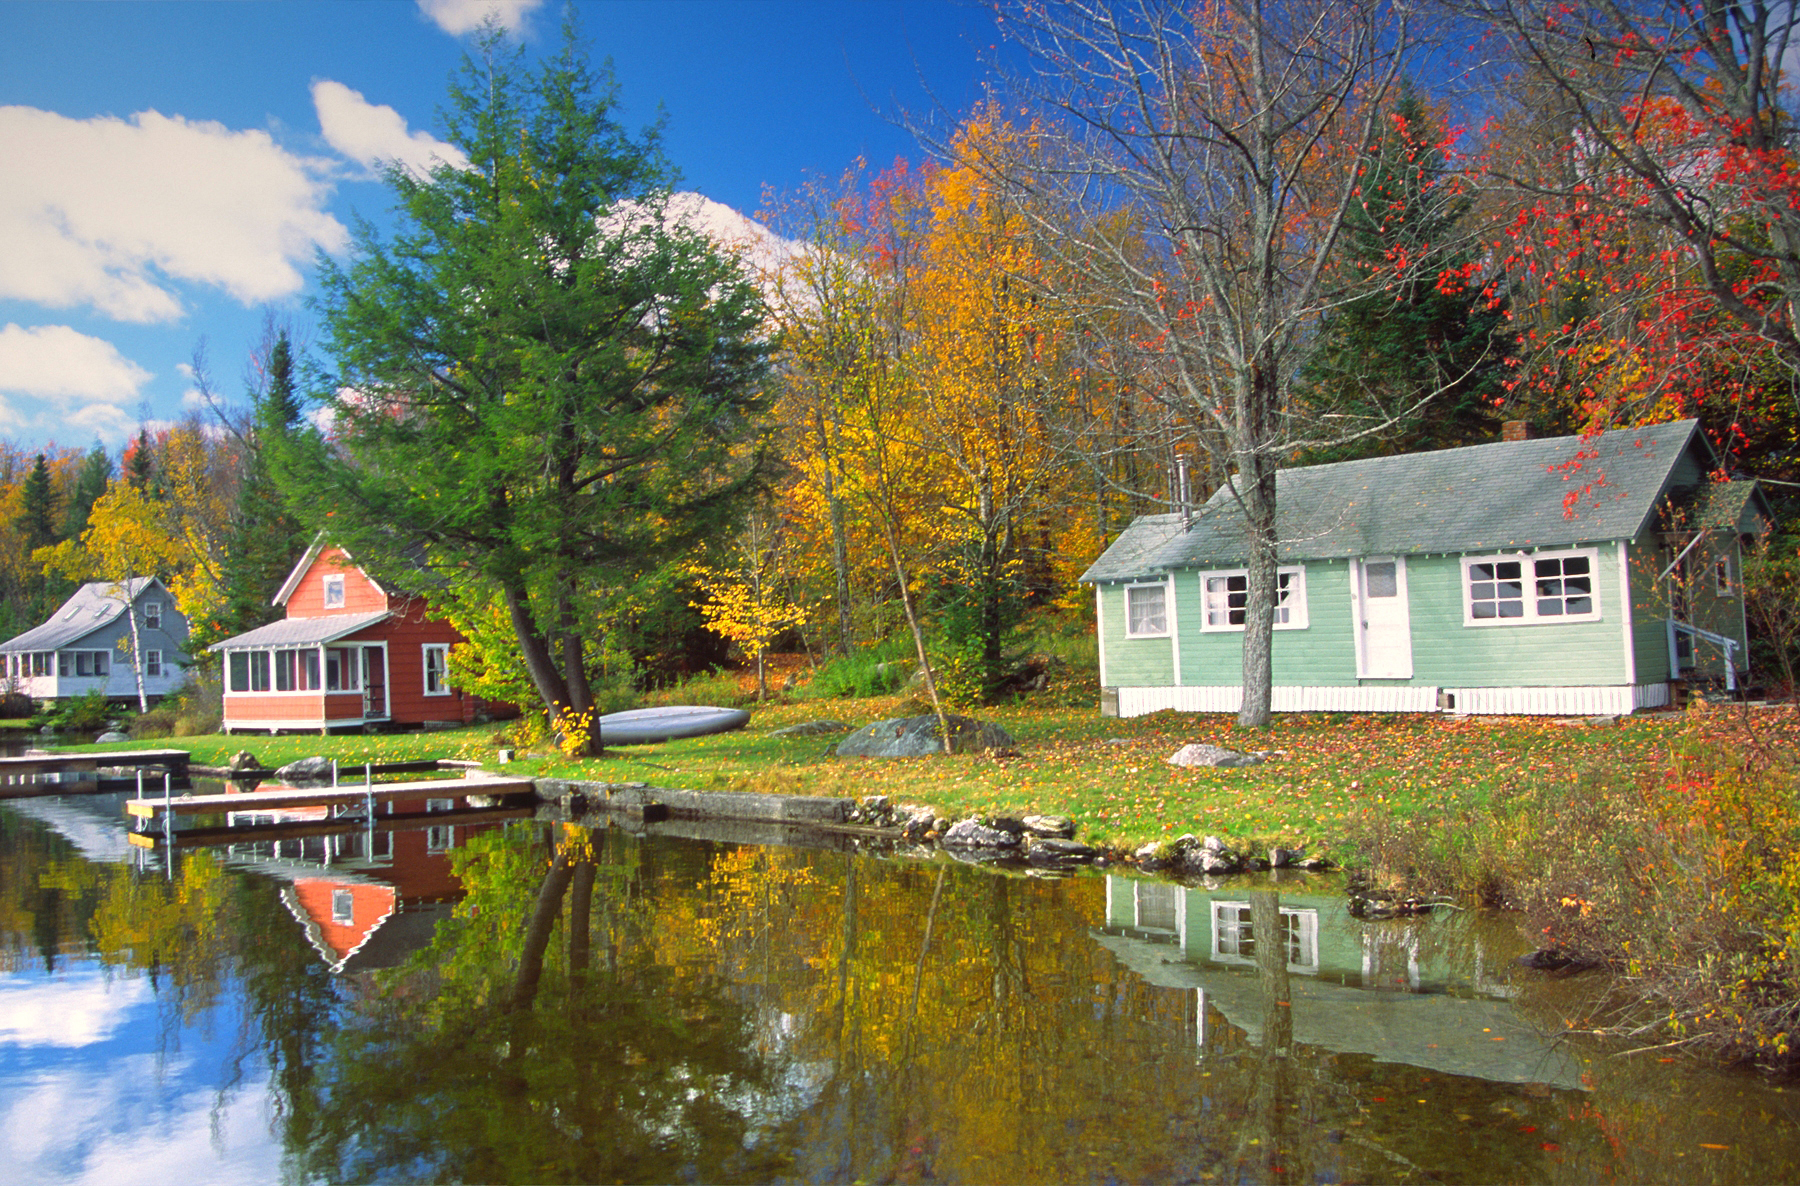 colorful-houses-on-a-lakeshore.jpg?mtime=20200124121739#asset:107778